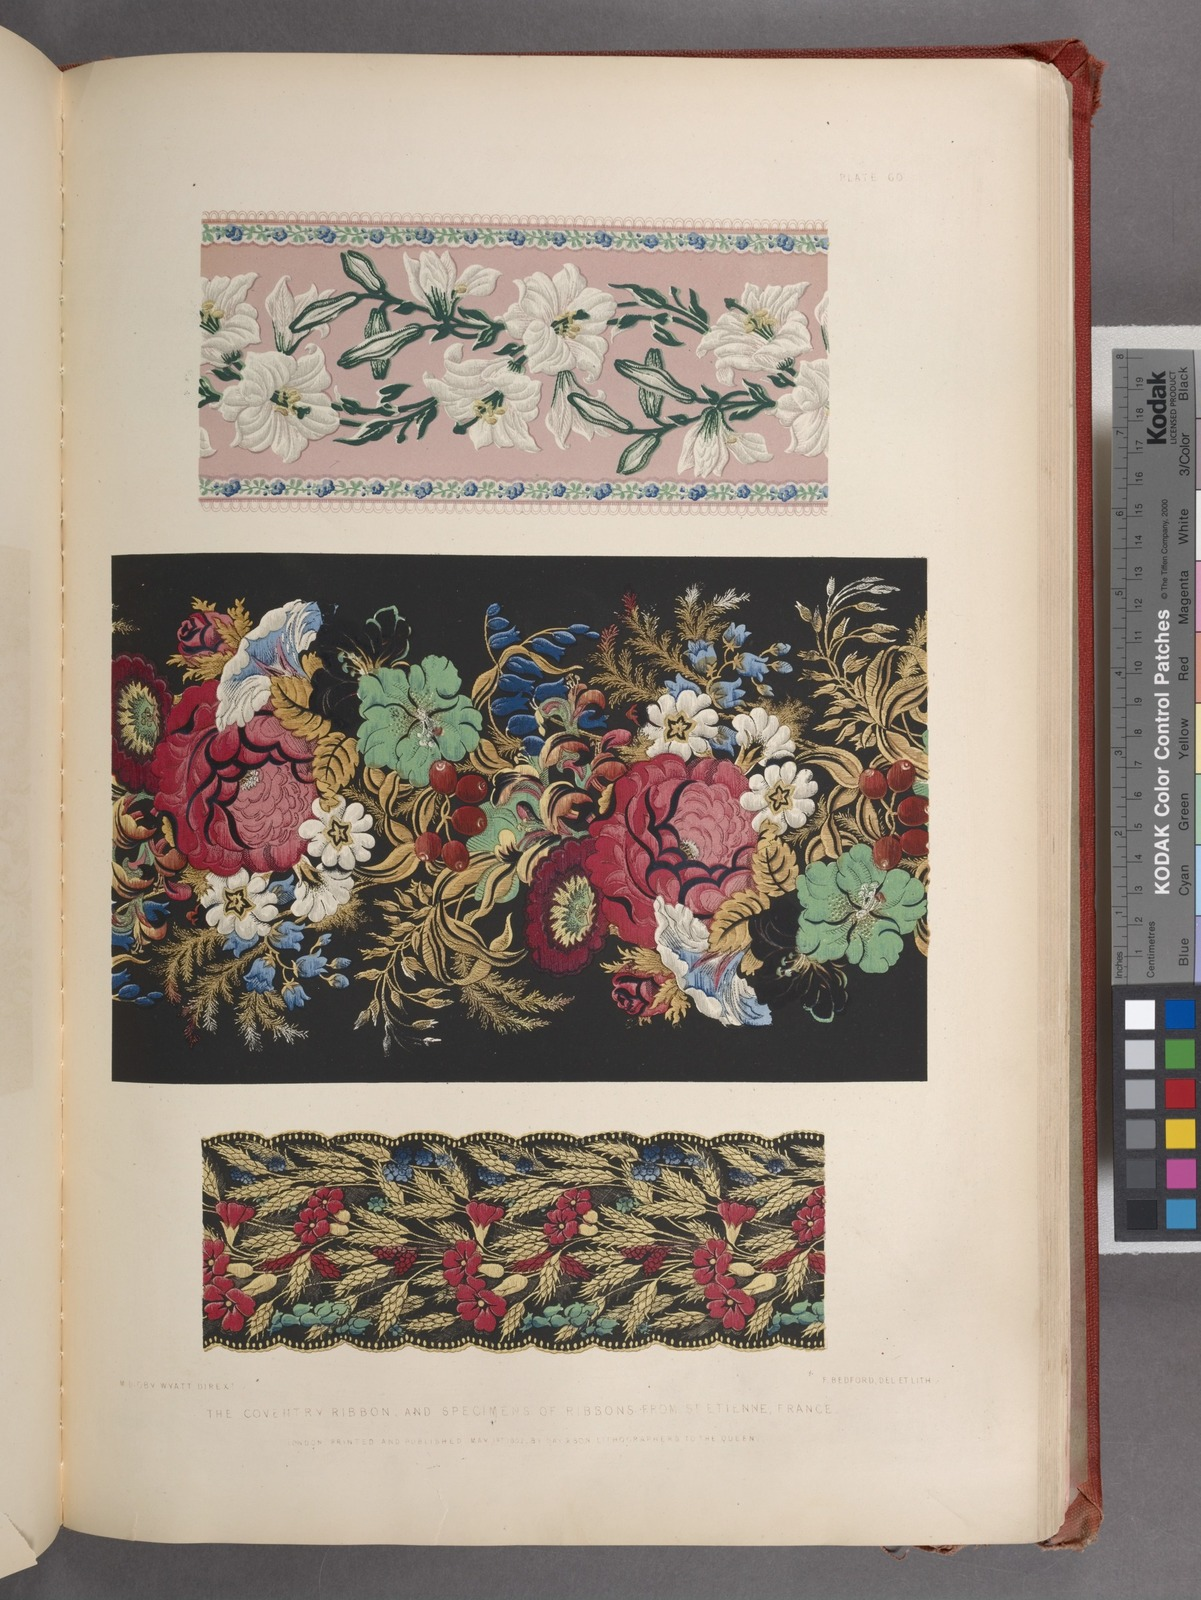 The Coventry ribbon, and specimens of ribbons from St. Etienne, France.